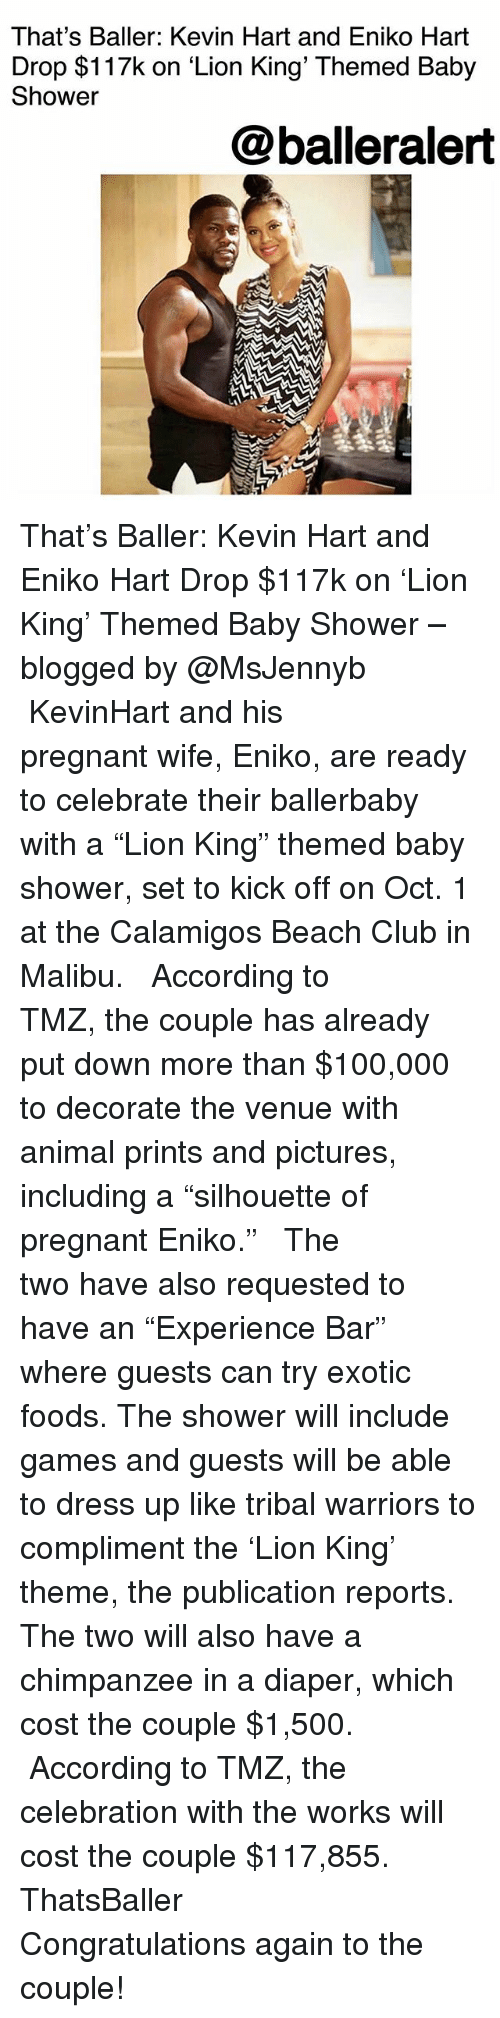 """Anaconda, Club, and Kevin Hart: That's Baller: Kevin Hart and Eniko Hart  Drop $117k on 'Lion King' Themed Baby  Shower  @balleralert That's Baller: Kevin Hart and Eniko Hart Drop $117k on 'Lion King' Themed Baby Shower – blogged by @MsJennyb ⠀⠀⠀⠀⠀⠀⠀ ⠀⠀⠀⠀⠀⠀⠀ KevinHart and his pregnant wife, Eniko, are ready to celebrate their ballerbaby with a """"Lion King"""" themed baby shower, set to kick off on Oct. 1 at the Calamigos Beach Club in Malibu. ⠀⠀⠀⠀⠀⠀⠀ ⠀⠀⠀⠀⠀⠀⠀ According to TMZ, the couple has already put down more than $100,000 to decorate the venue with animal prints and pictures, including a """"silhouette of pregnant Eniko."""" ⠀⠀⠀⠀⠀⠀⠀ ⠀⠀⠀⠀⠀⠀⠀ The two have also requested to have an """"Experience Bar"""" where guests can try exotic foods. The shower will include games and guests will be able to dress up like tribal warriors to compliment the 'Lion King' theme, the publication reports. The two will also have a chimpanzee in a diaper, which cost the couple $1,500. ⠀⠀⠀⠀⠀⠀⠀ ⠀⠀⠀⠀⠀⠀⠀ According to TMZ, the celebration with the works will cost the couple $117,855. ThatsBaller ⠀⠀⠀⠀⠀⠀⠀ ⠀⠀⠀⠀⠀⠀⠀ Congratulations again to the couple!"""